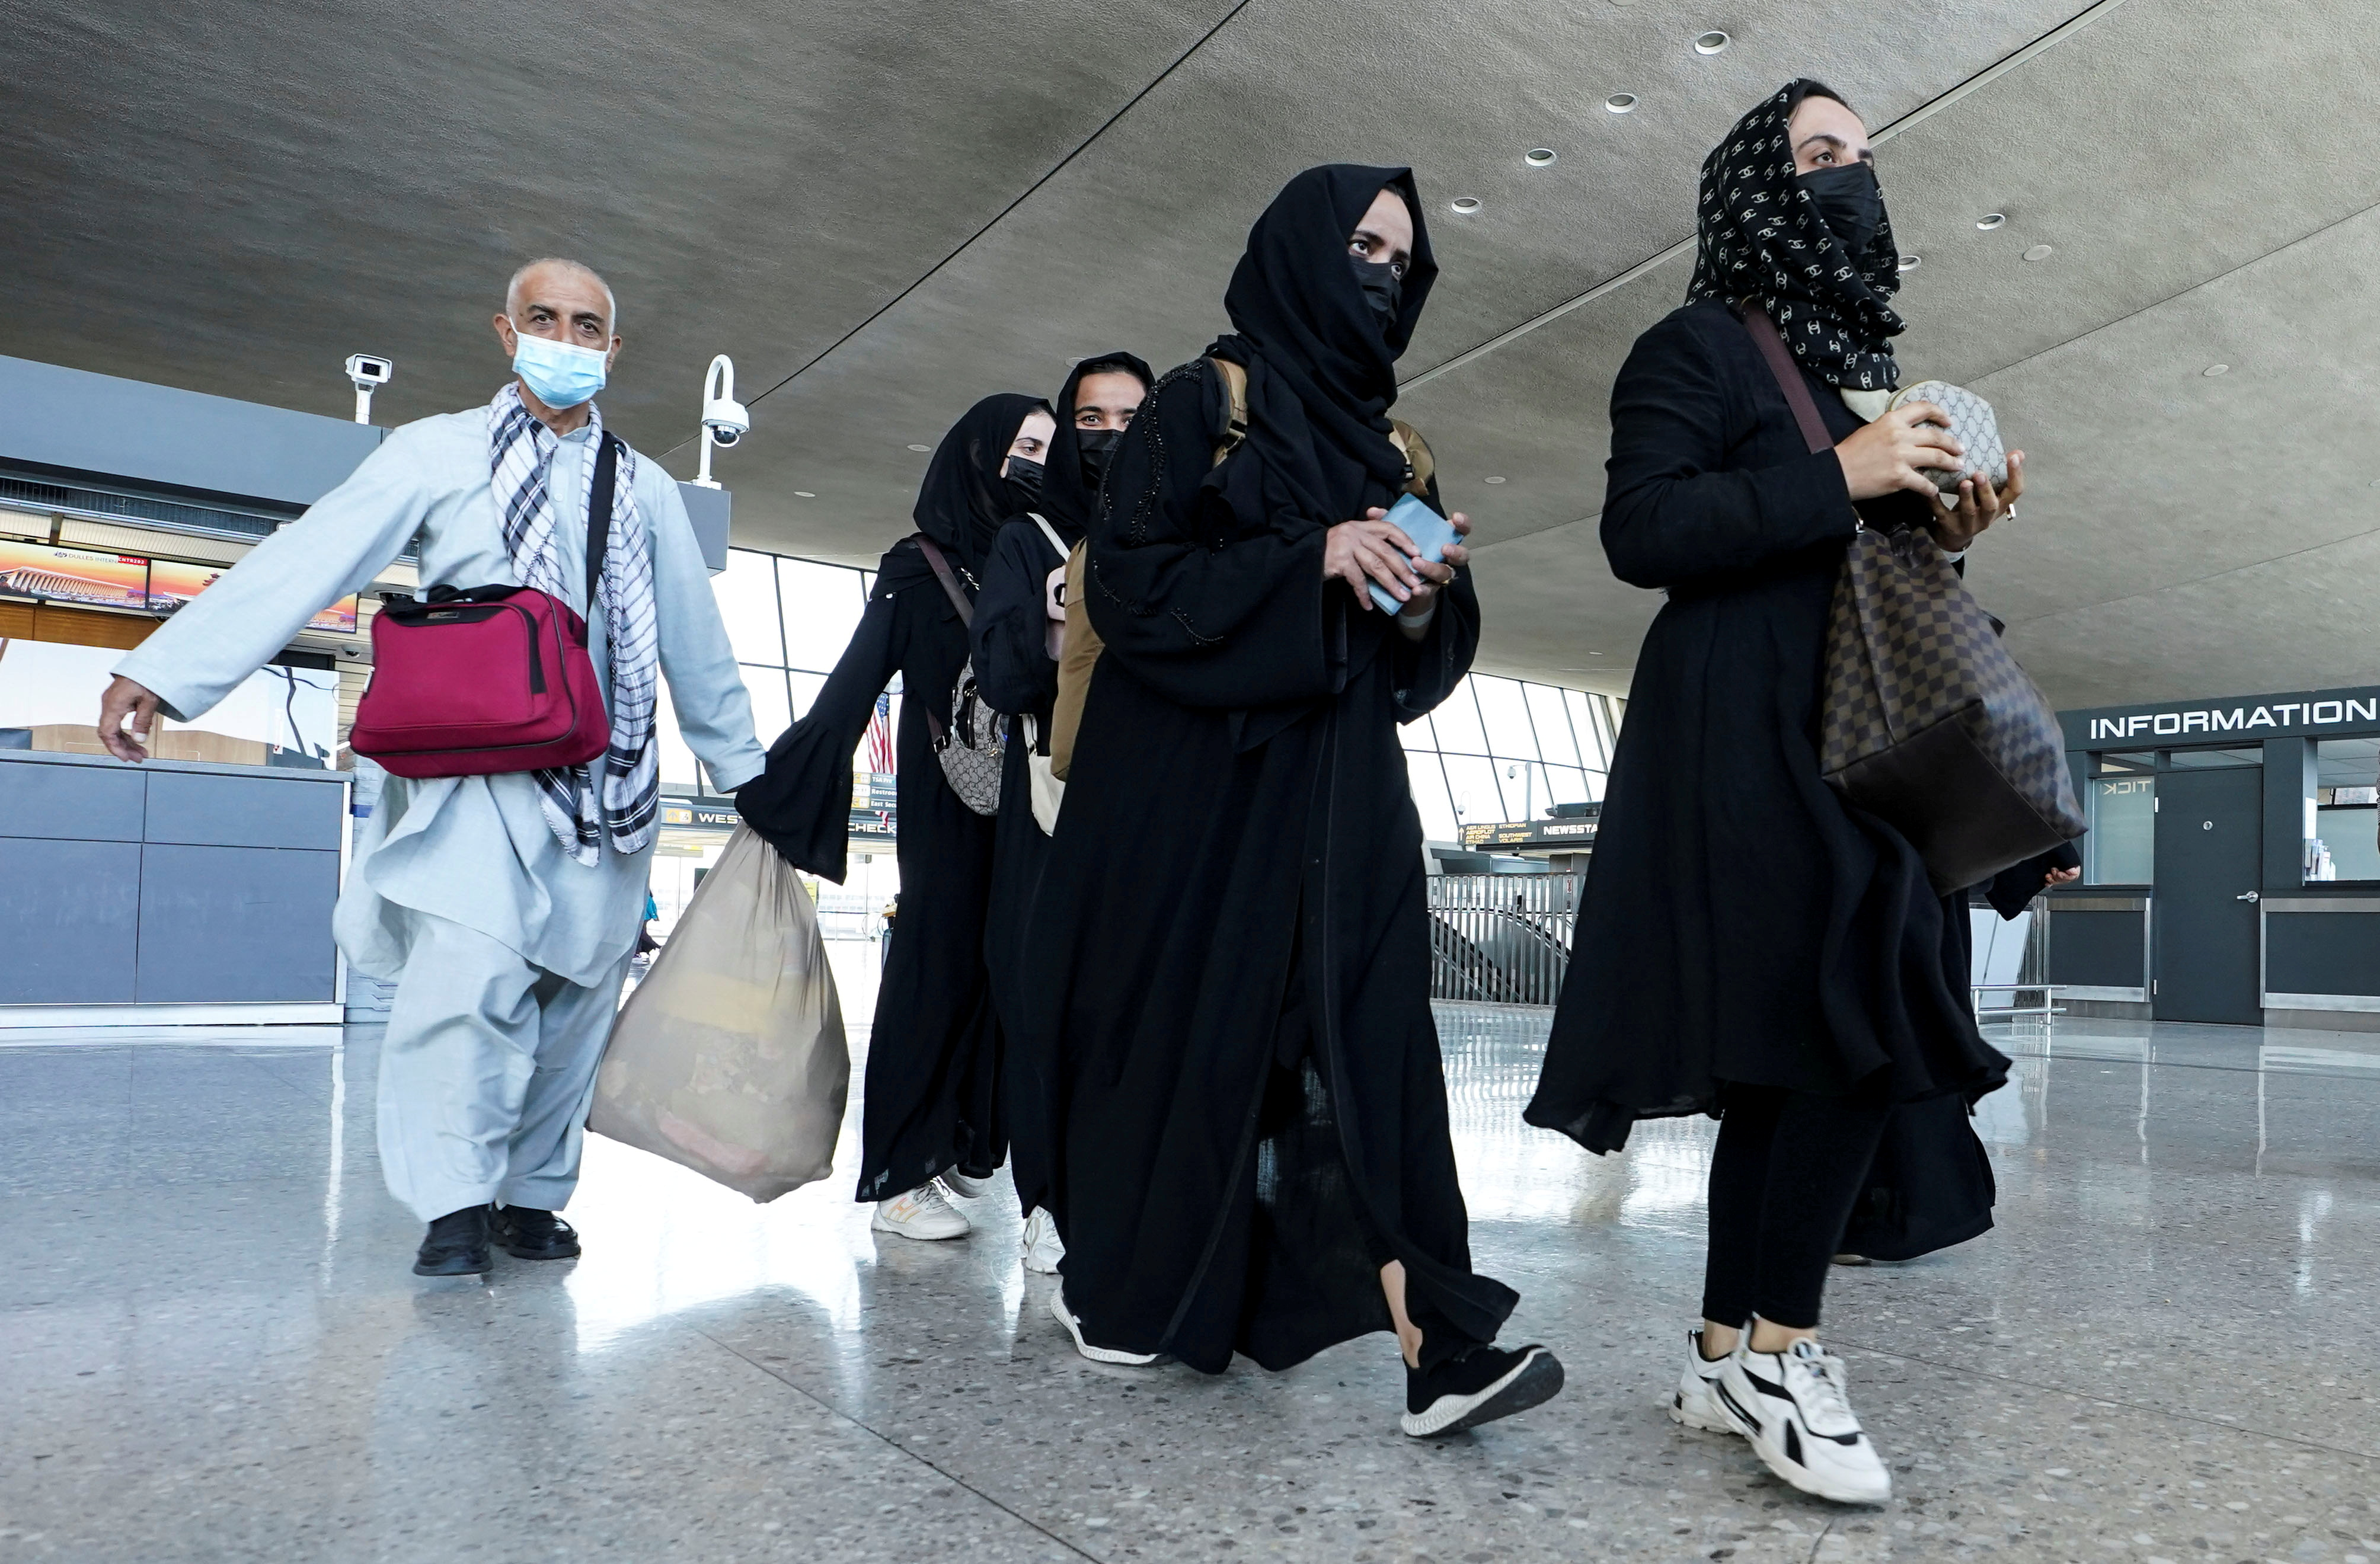 Afghan refugees walk to a bus taking them to a refugee processing center upon arrival at Dulles International Airport in Dulles, Virginia August 25, 2021. REUTERS/Kevin Lamarque